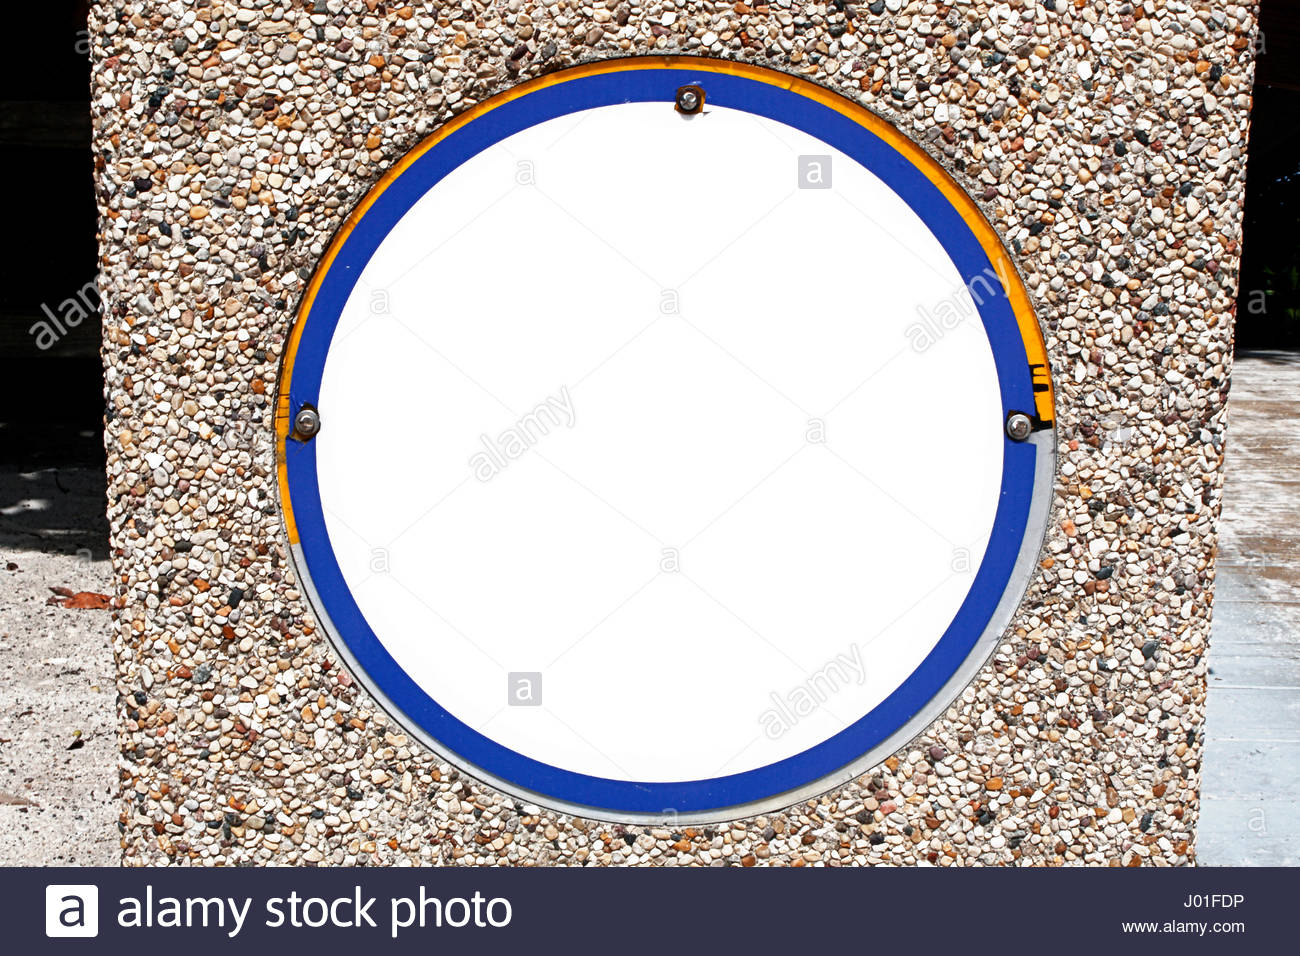 trash can stone rocks material - Stock Image